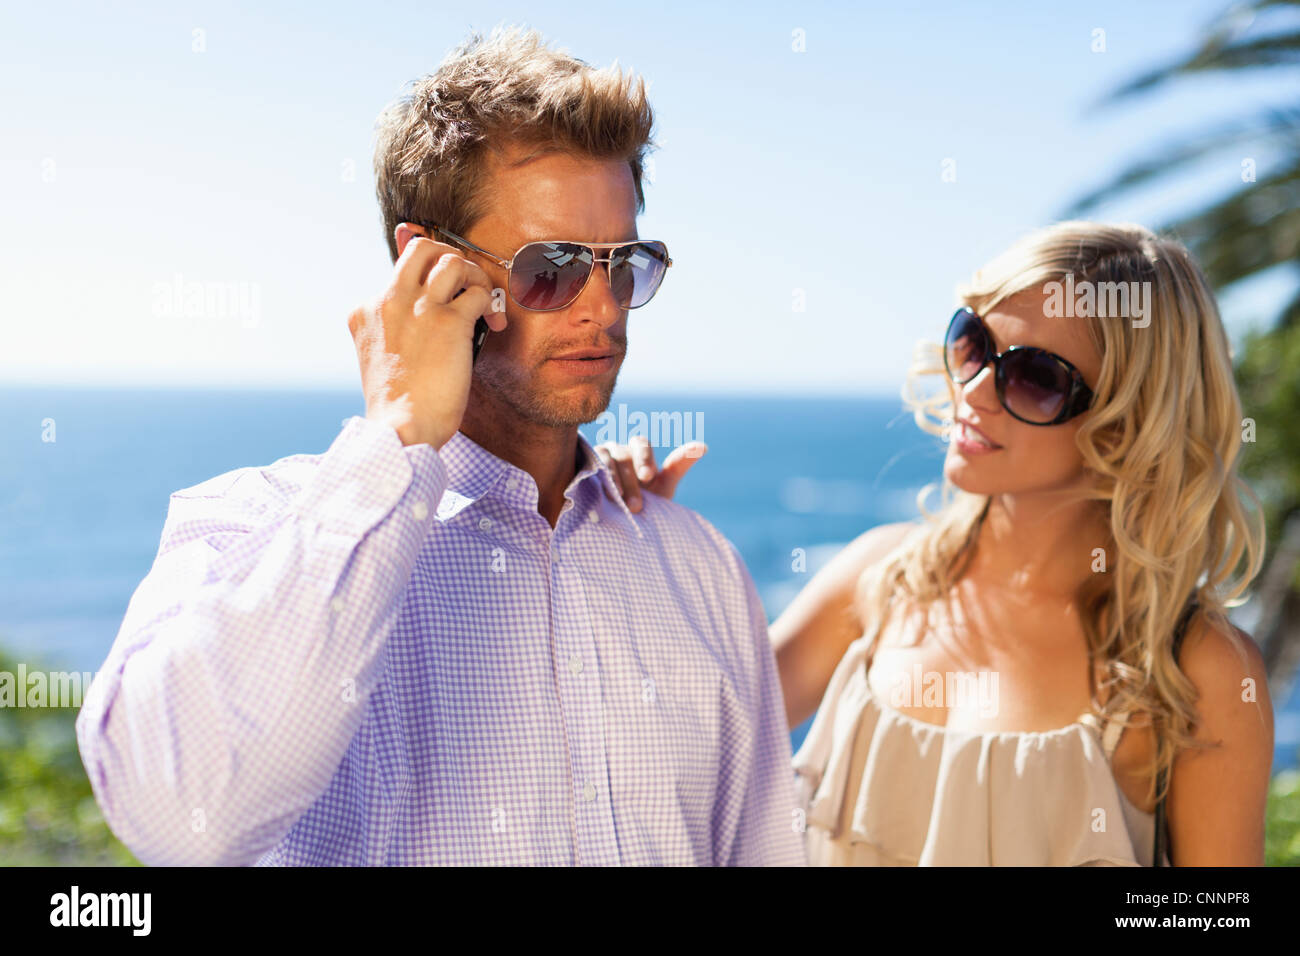 Man ignoring girlfriend for cell phone - Stock Image